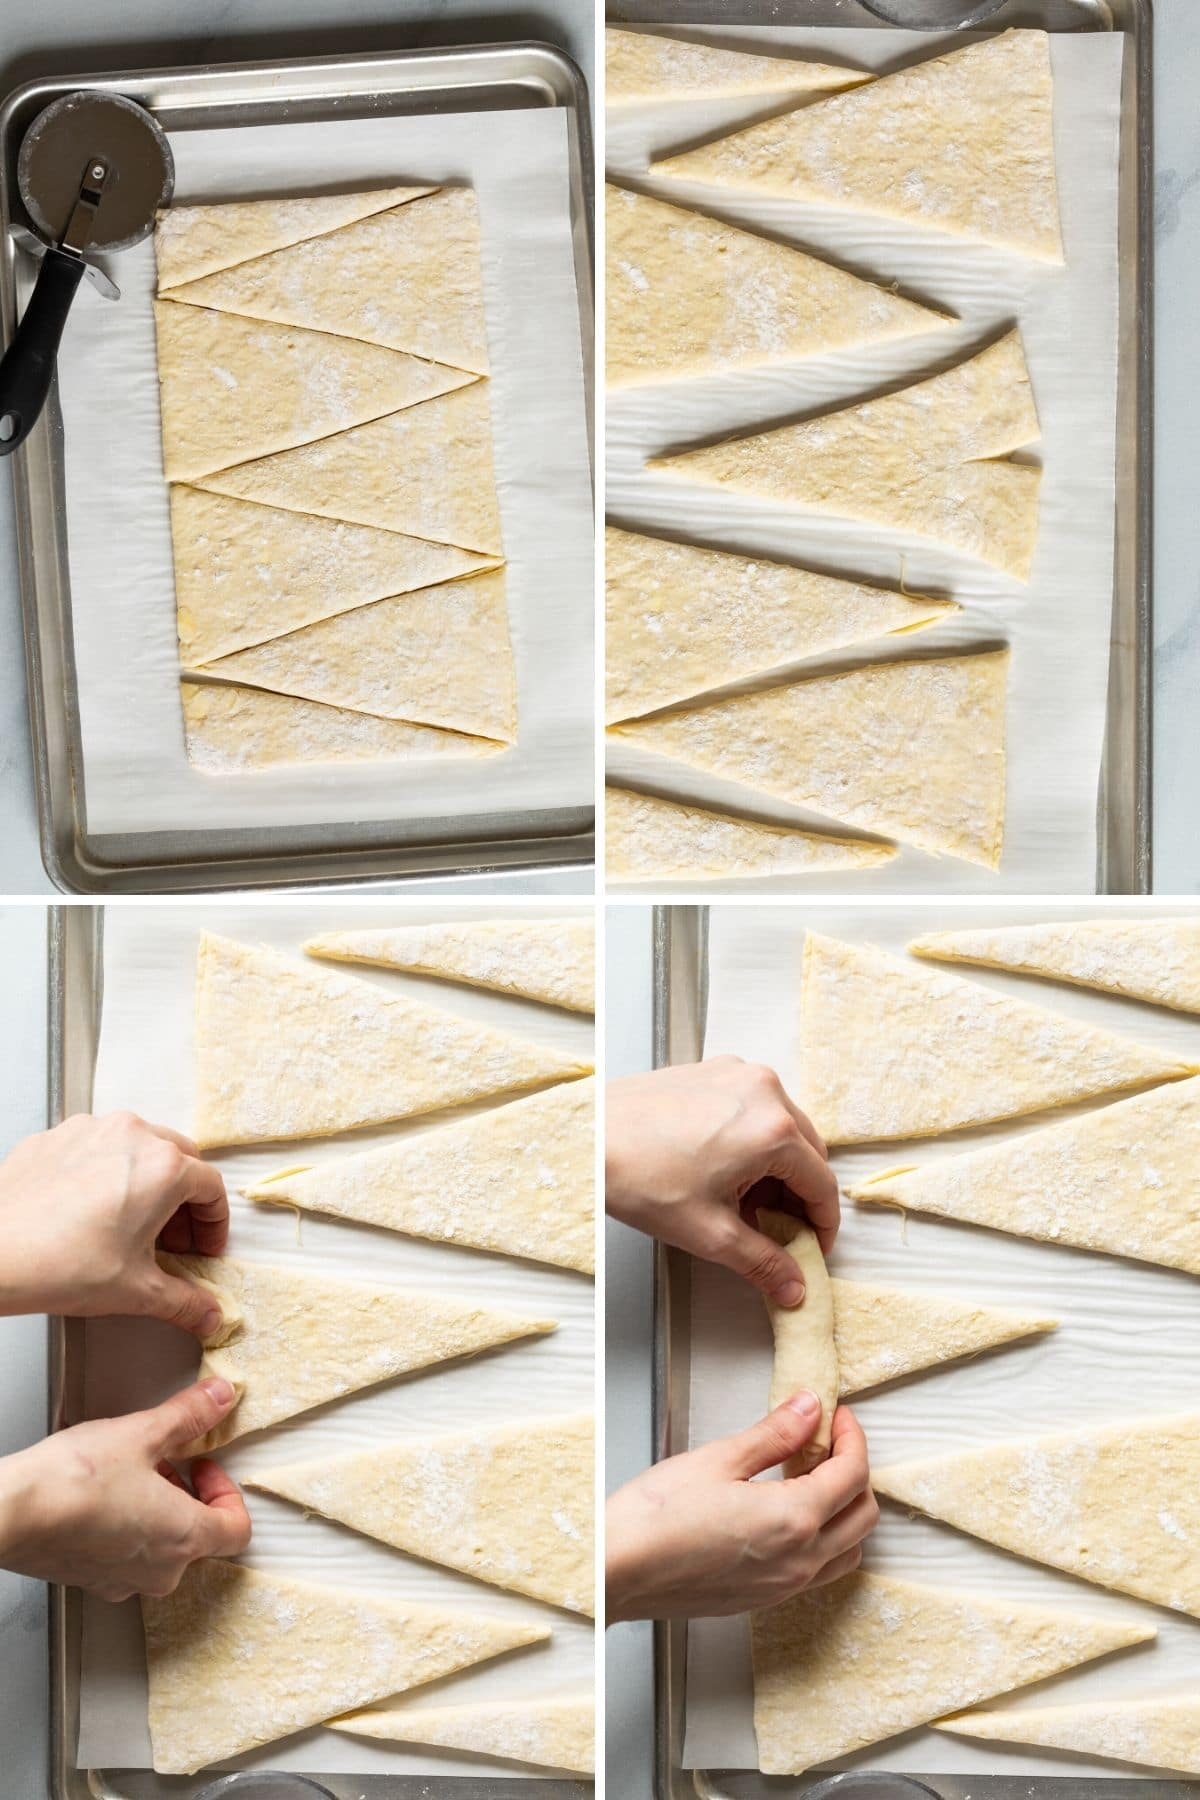 Step by step how to shape croissants